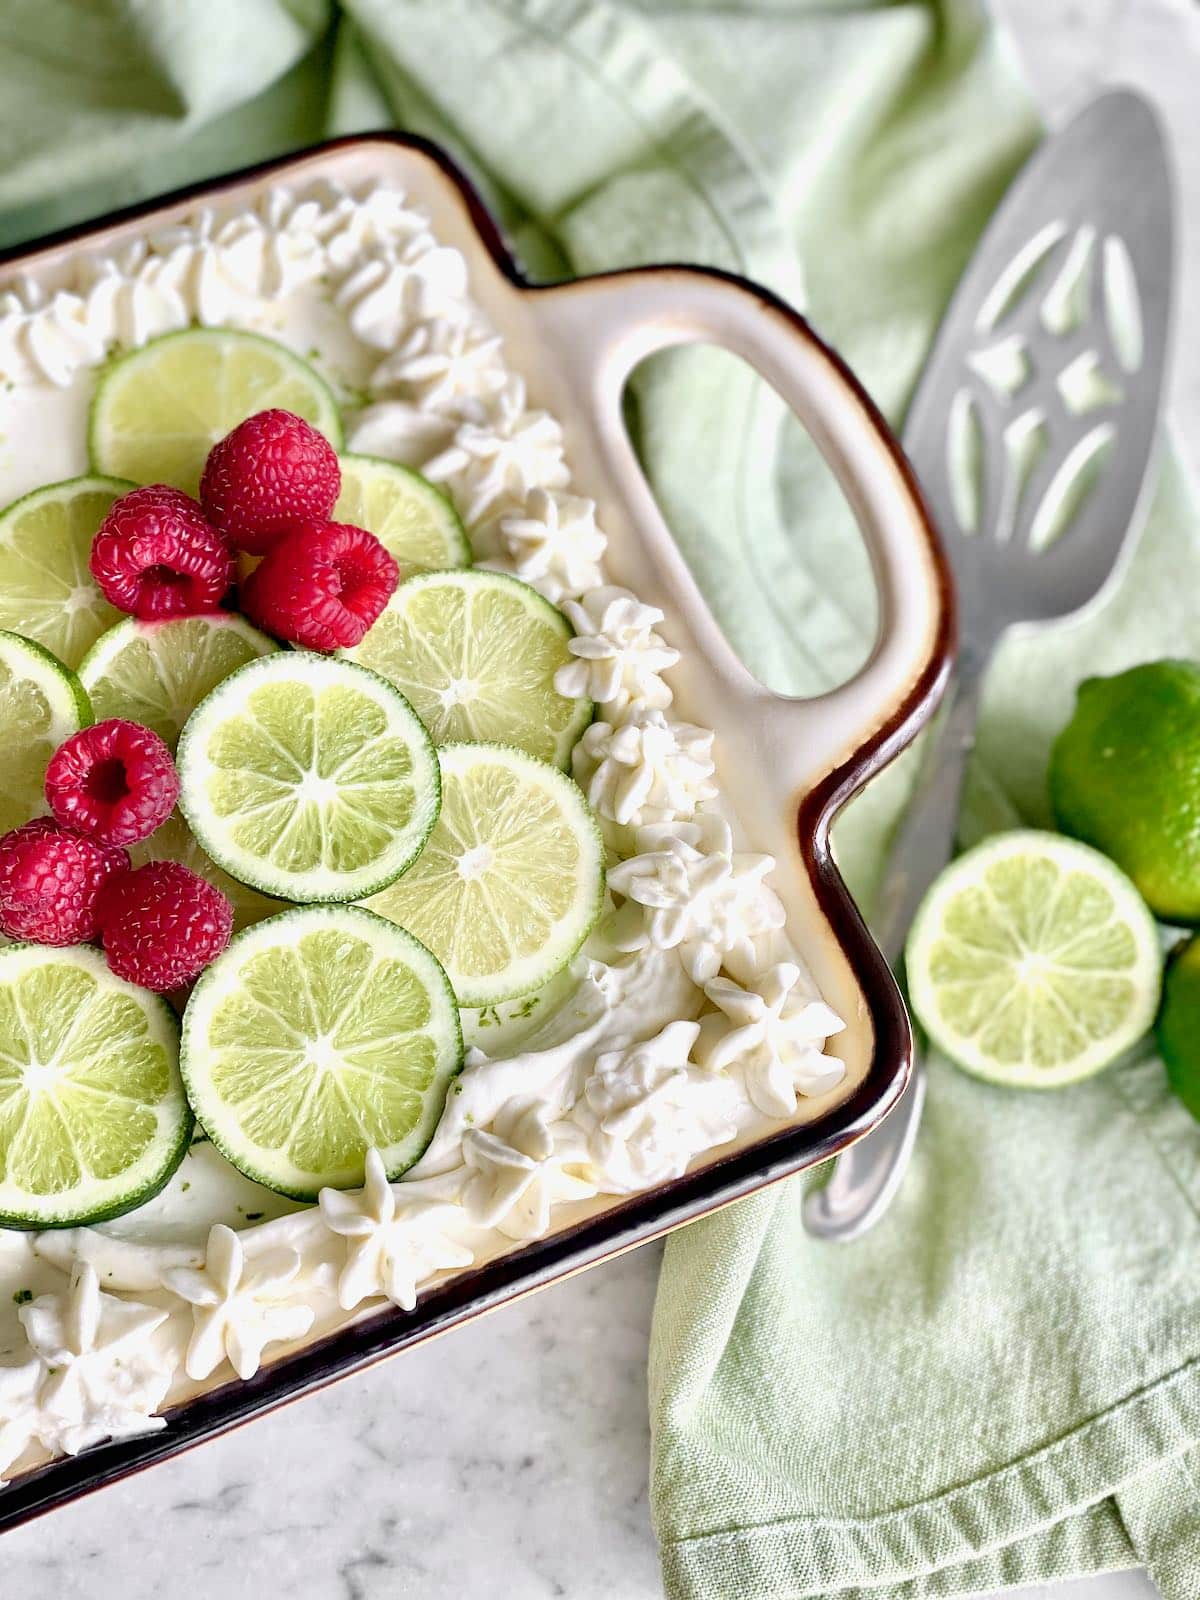 cake with a server and limes on the right side.